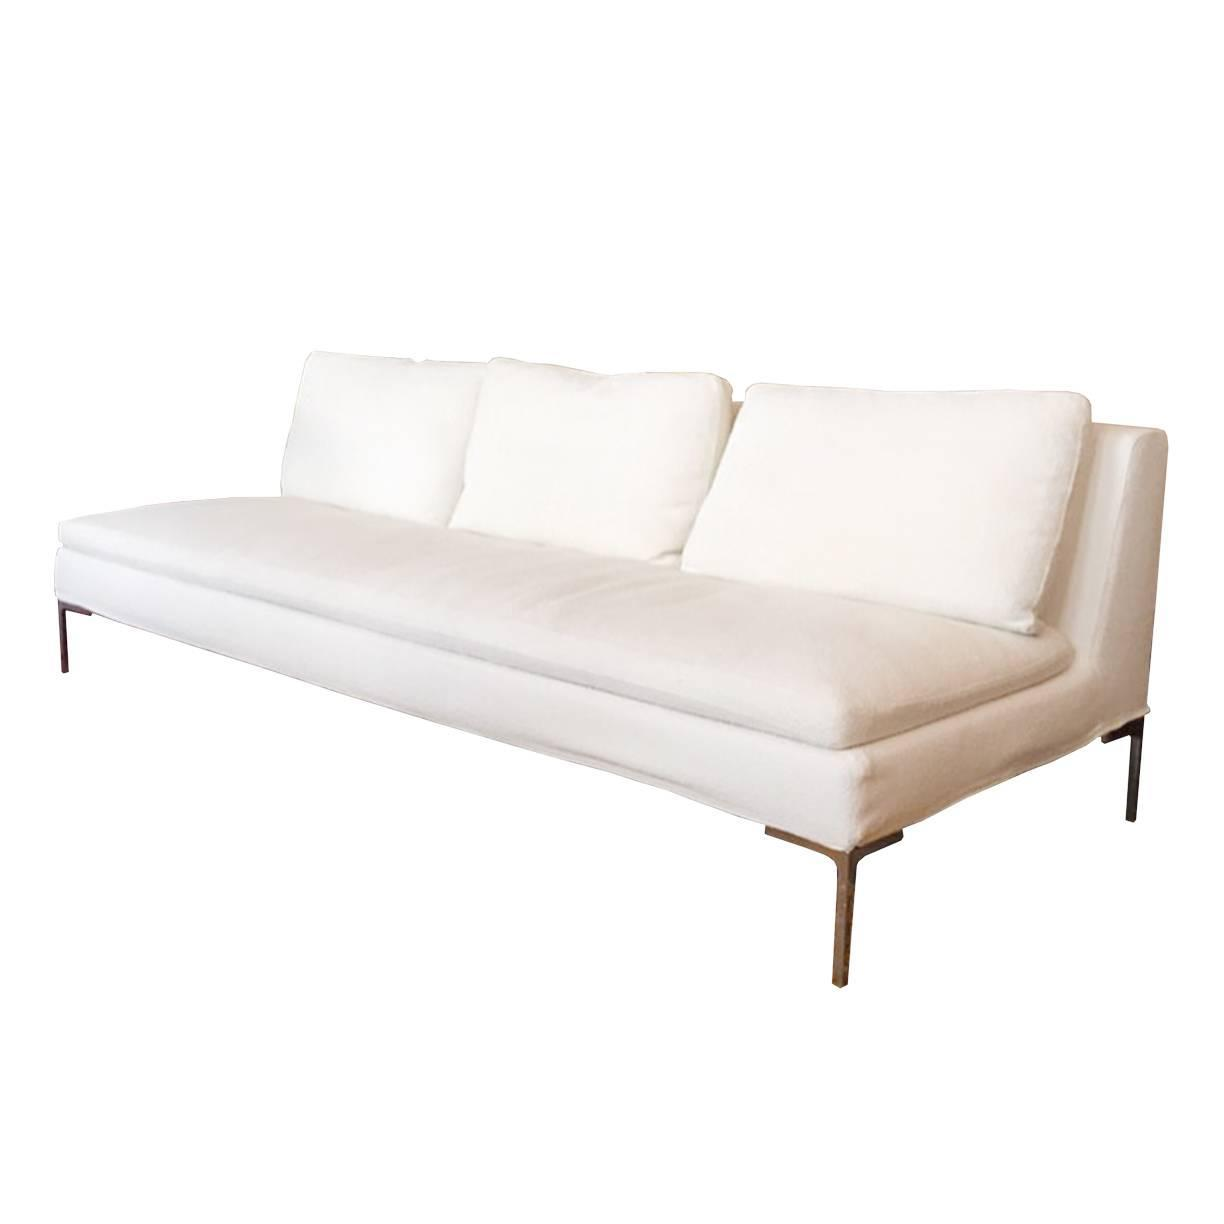 Slipper sofa by b b italia at 1stdibs Slipper loveseat